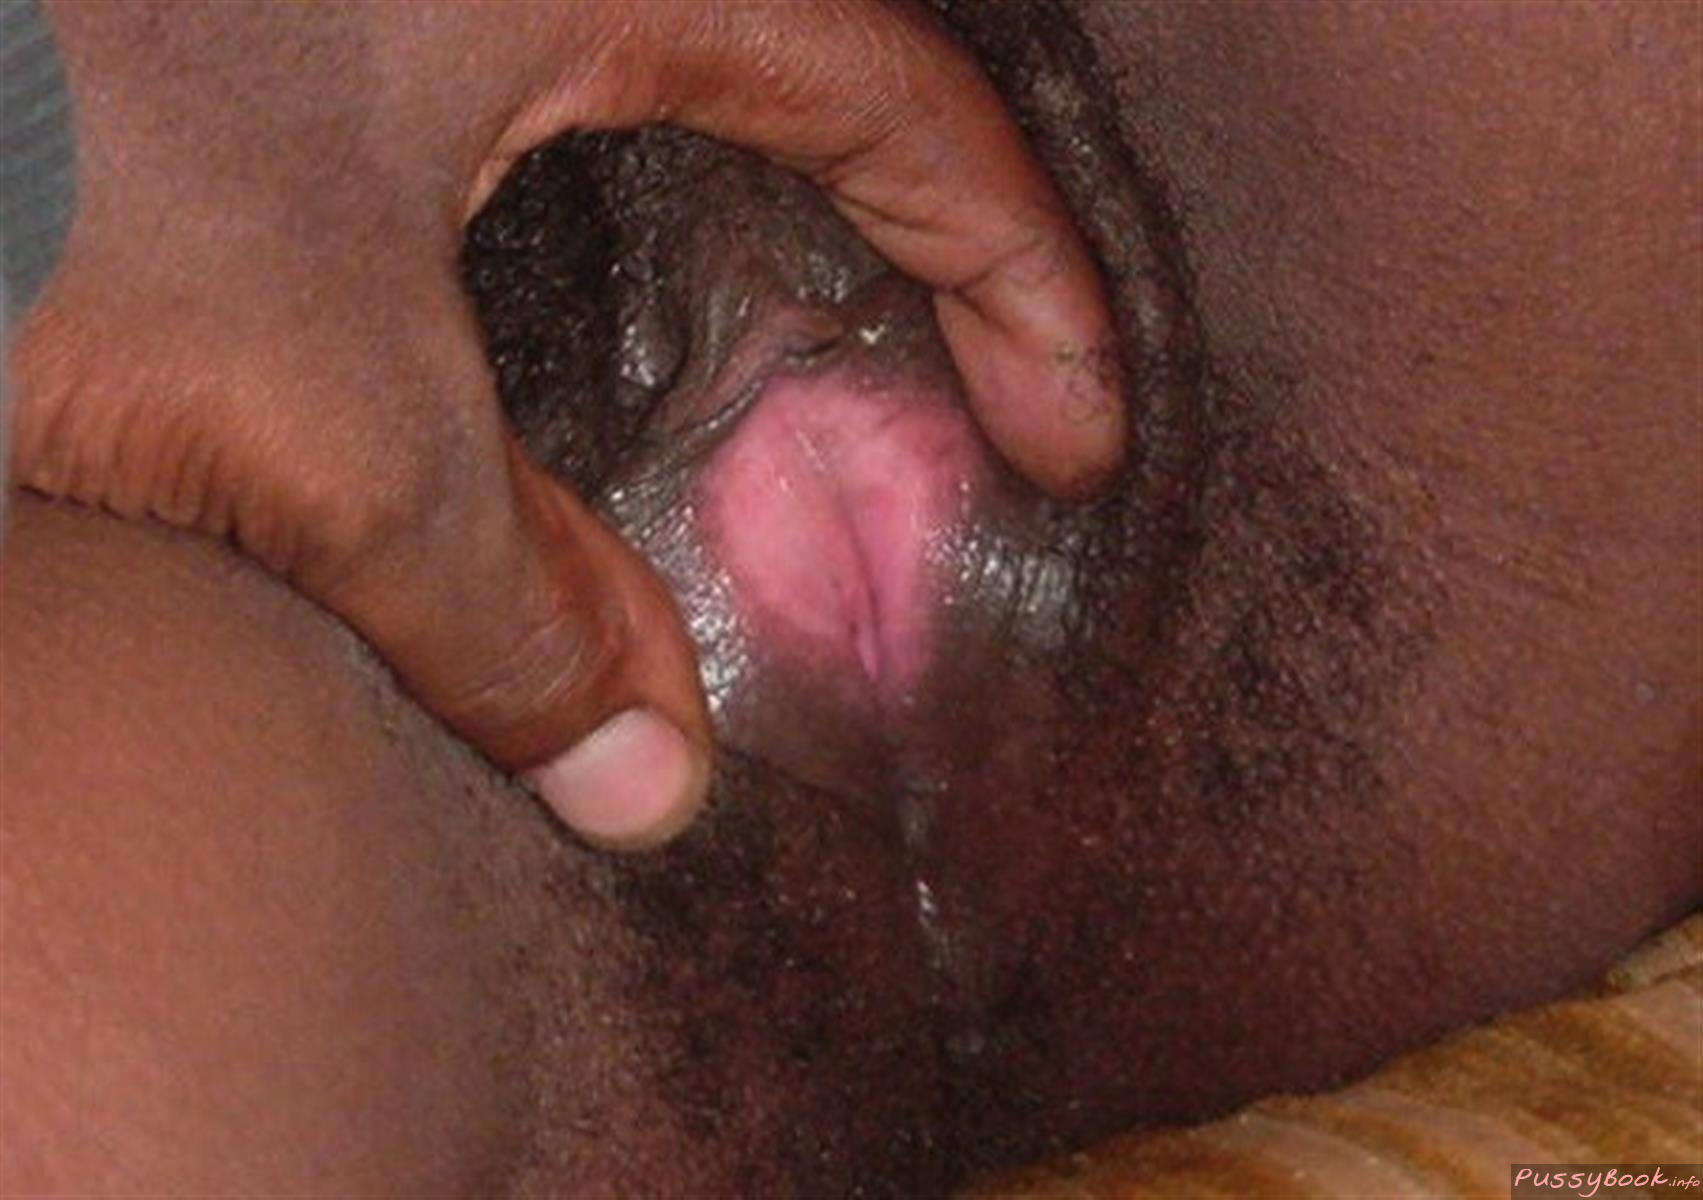 Rare Photo Of Vagina From Tribe  Pussy Pictures - Asses -3520